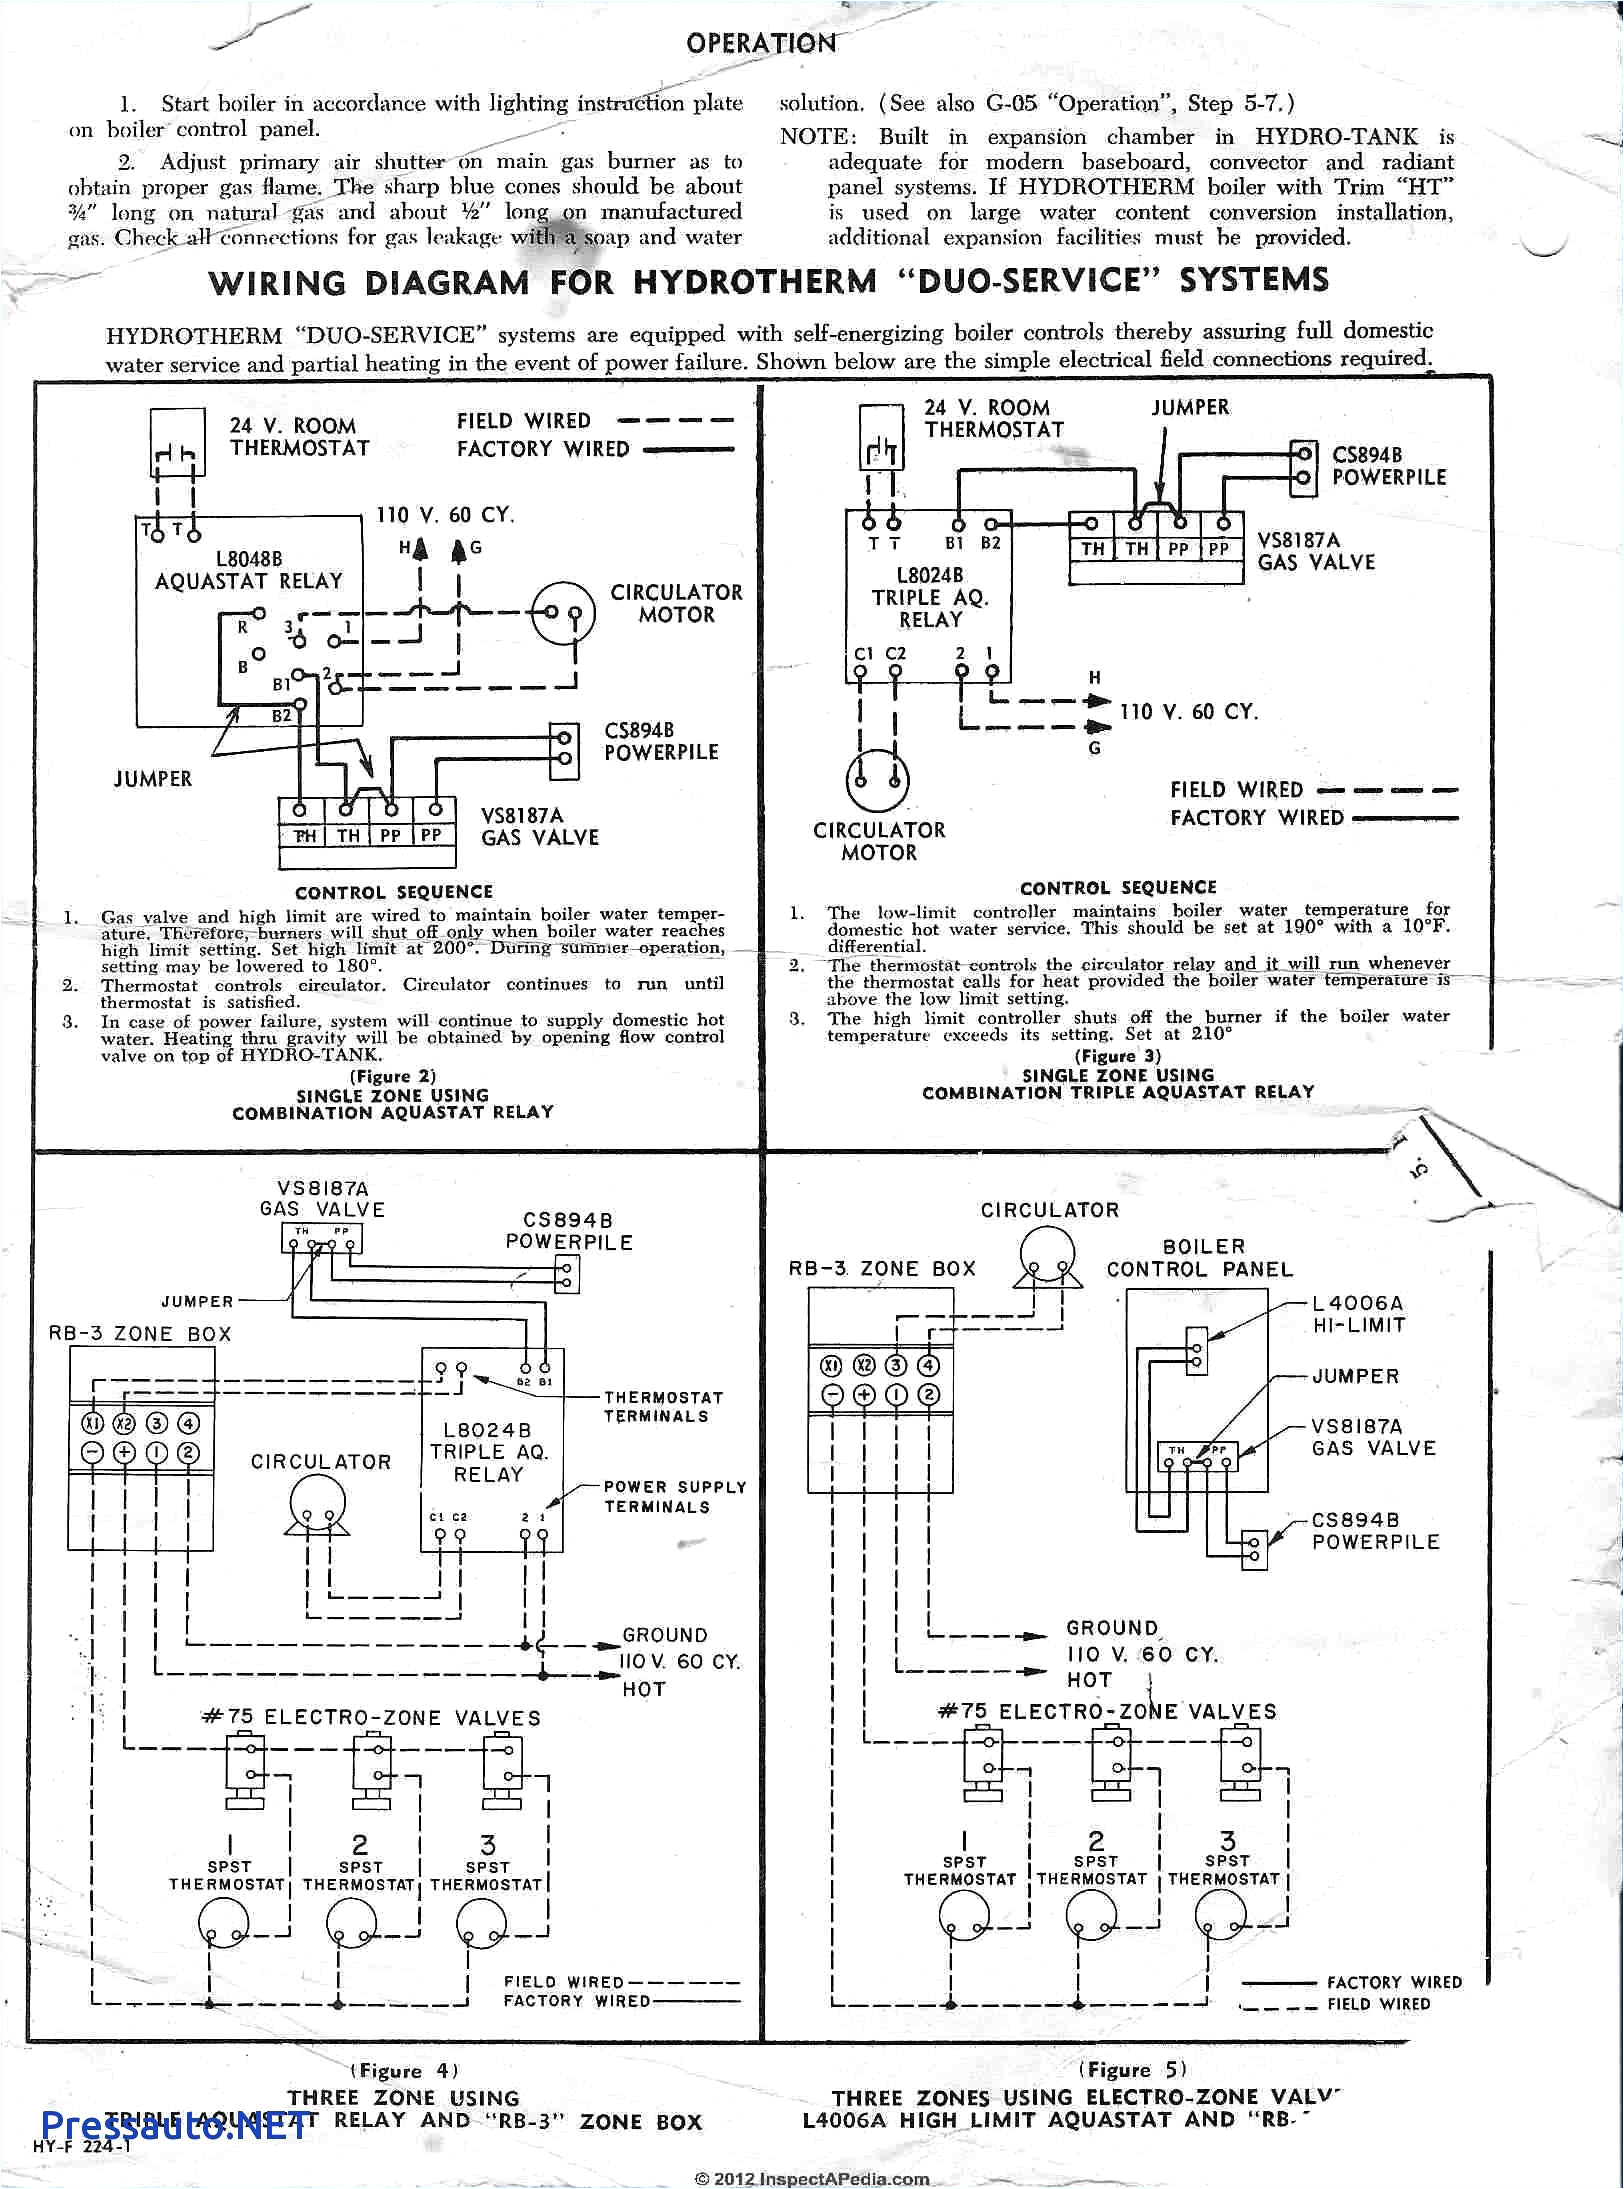 white rodgers solenoid wiring diagram wiring diagram view white rodgers type 84 relay wiring diagram white rodgers relay wiring diagram